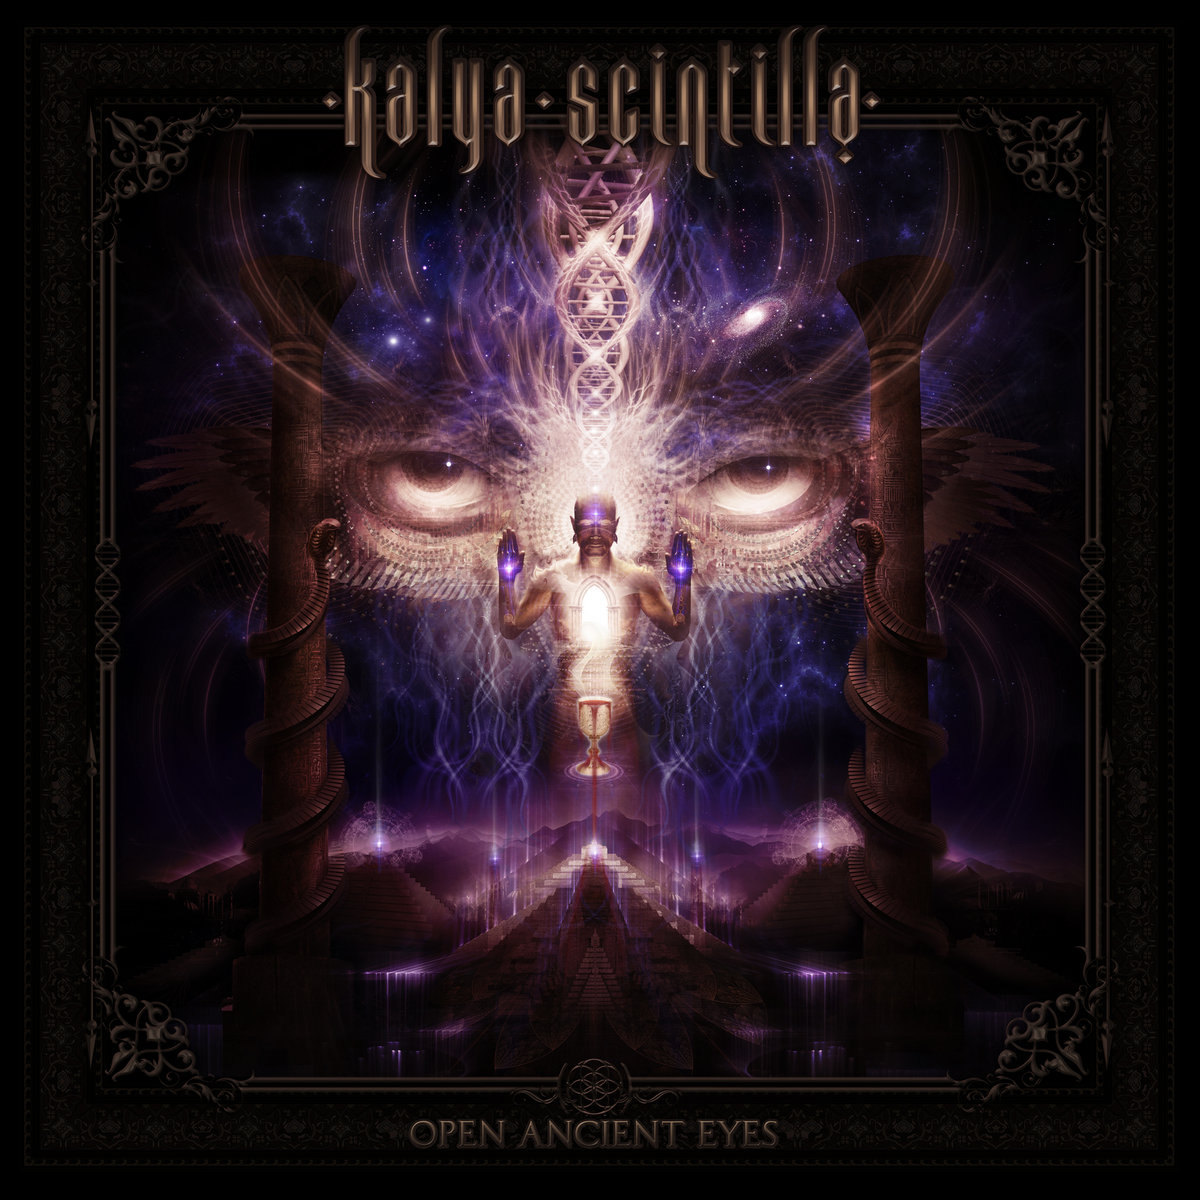 Kalya Scintilla - The Rise of Horus @ 'Open Ancient Eyes' album (432hz, electronic)